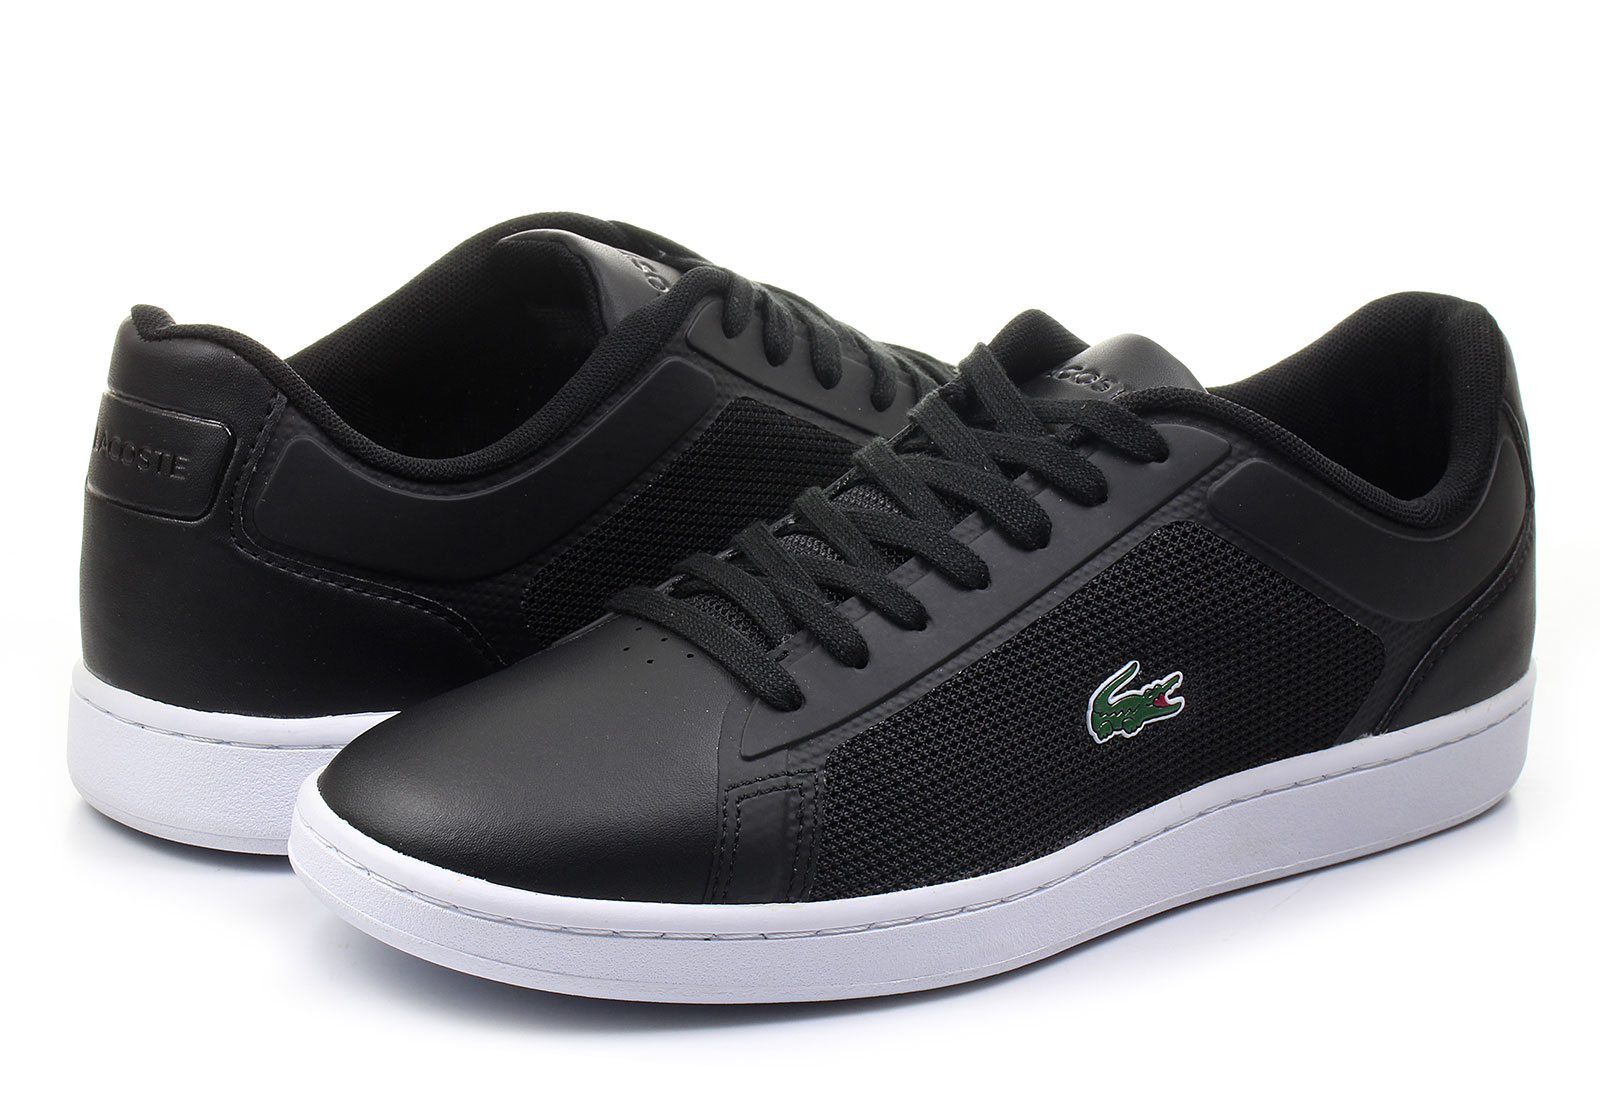 Buy Lacoste Slip On Shoes